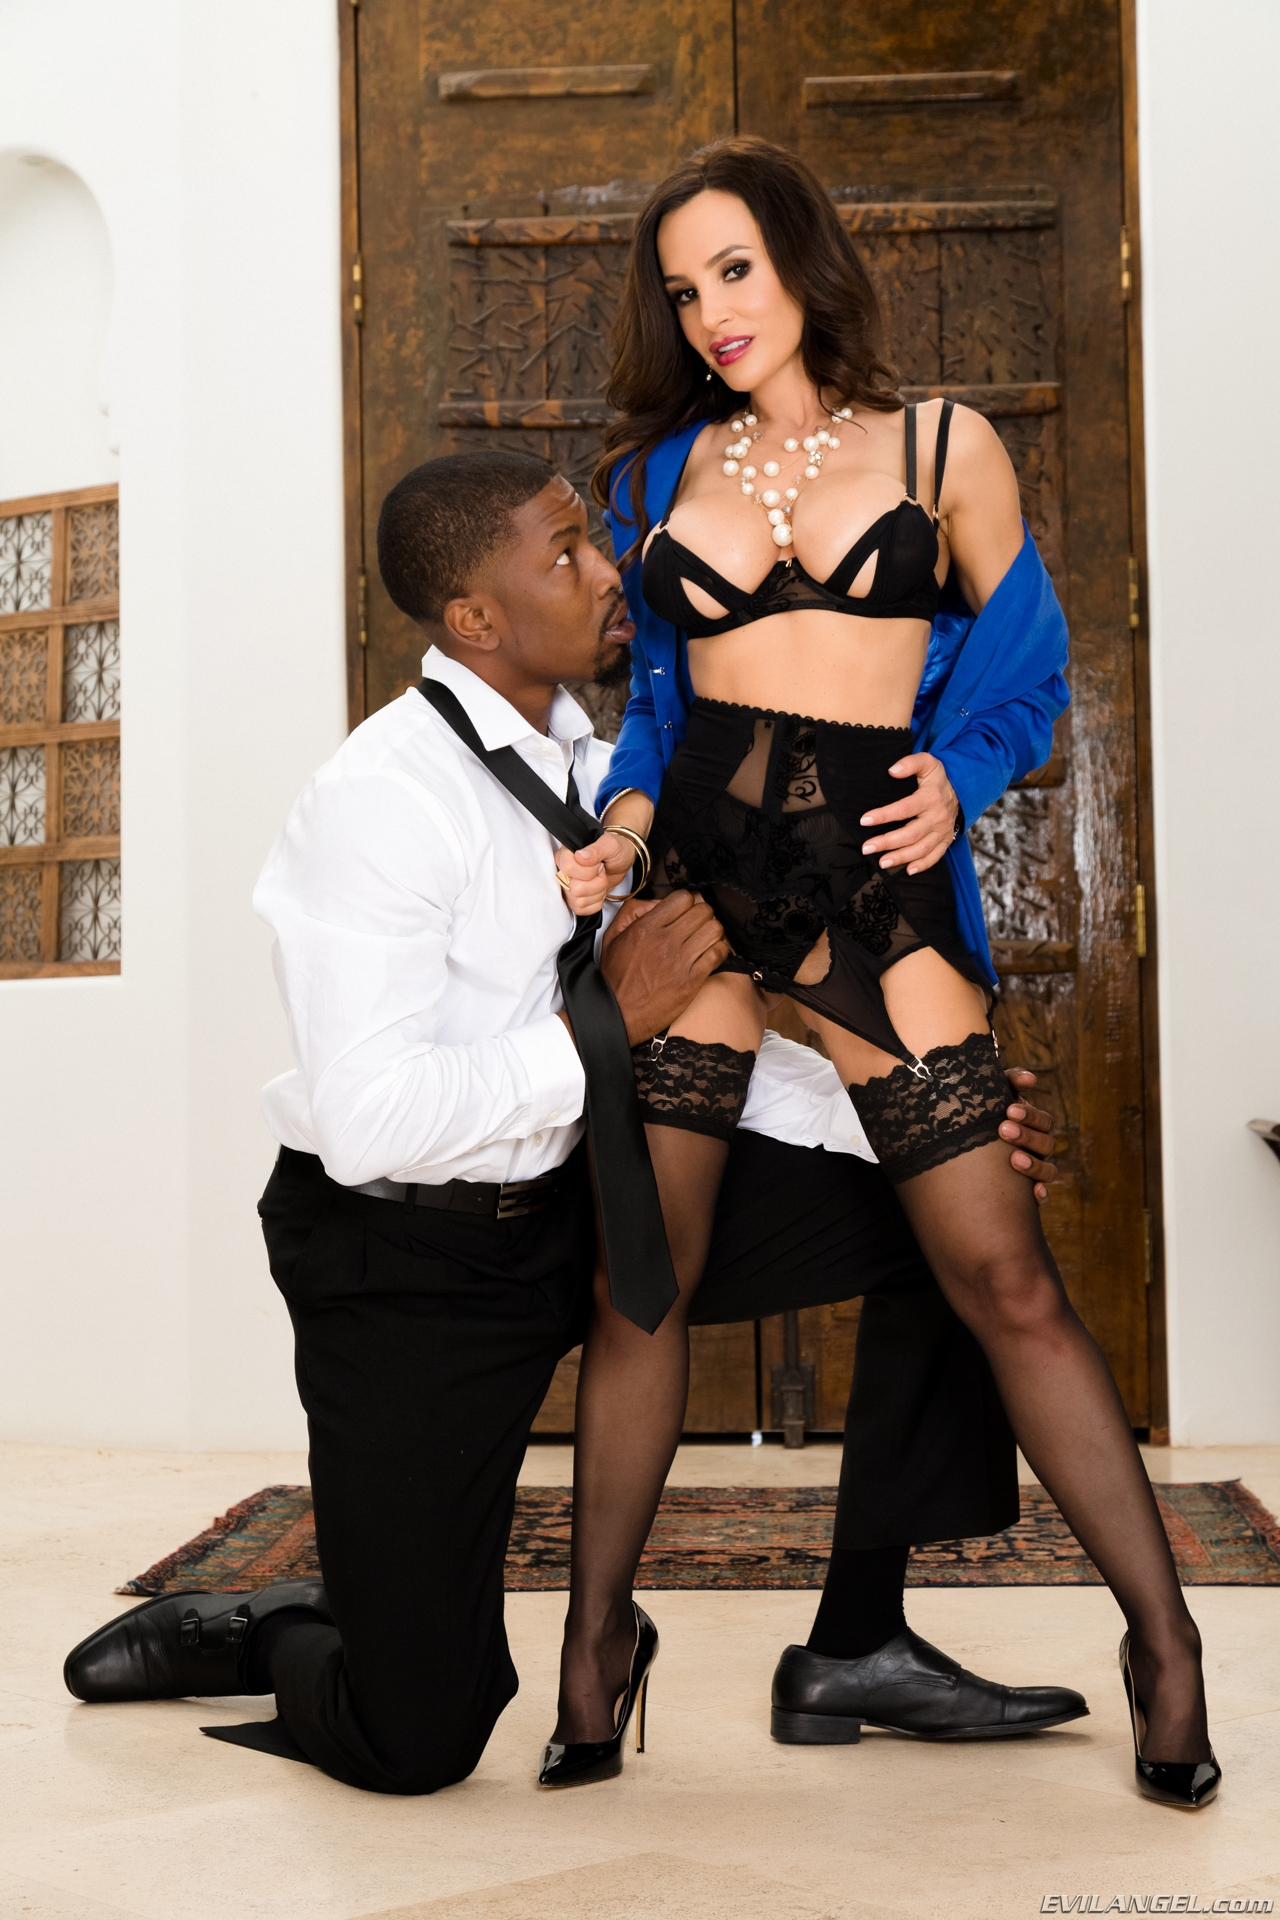 glamour milf lisa ann reappearance and comeback on evilangel black #3